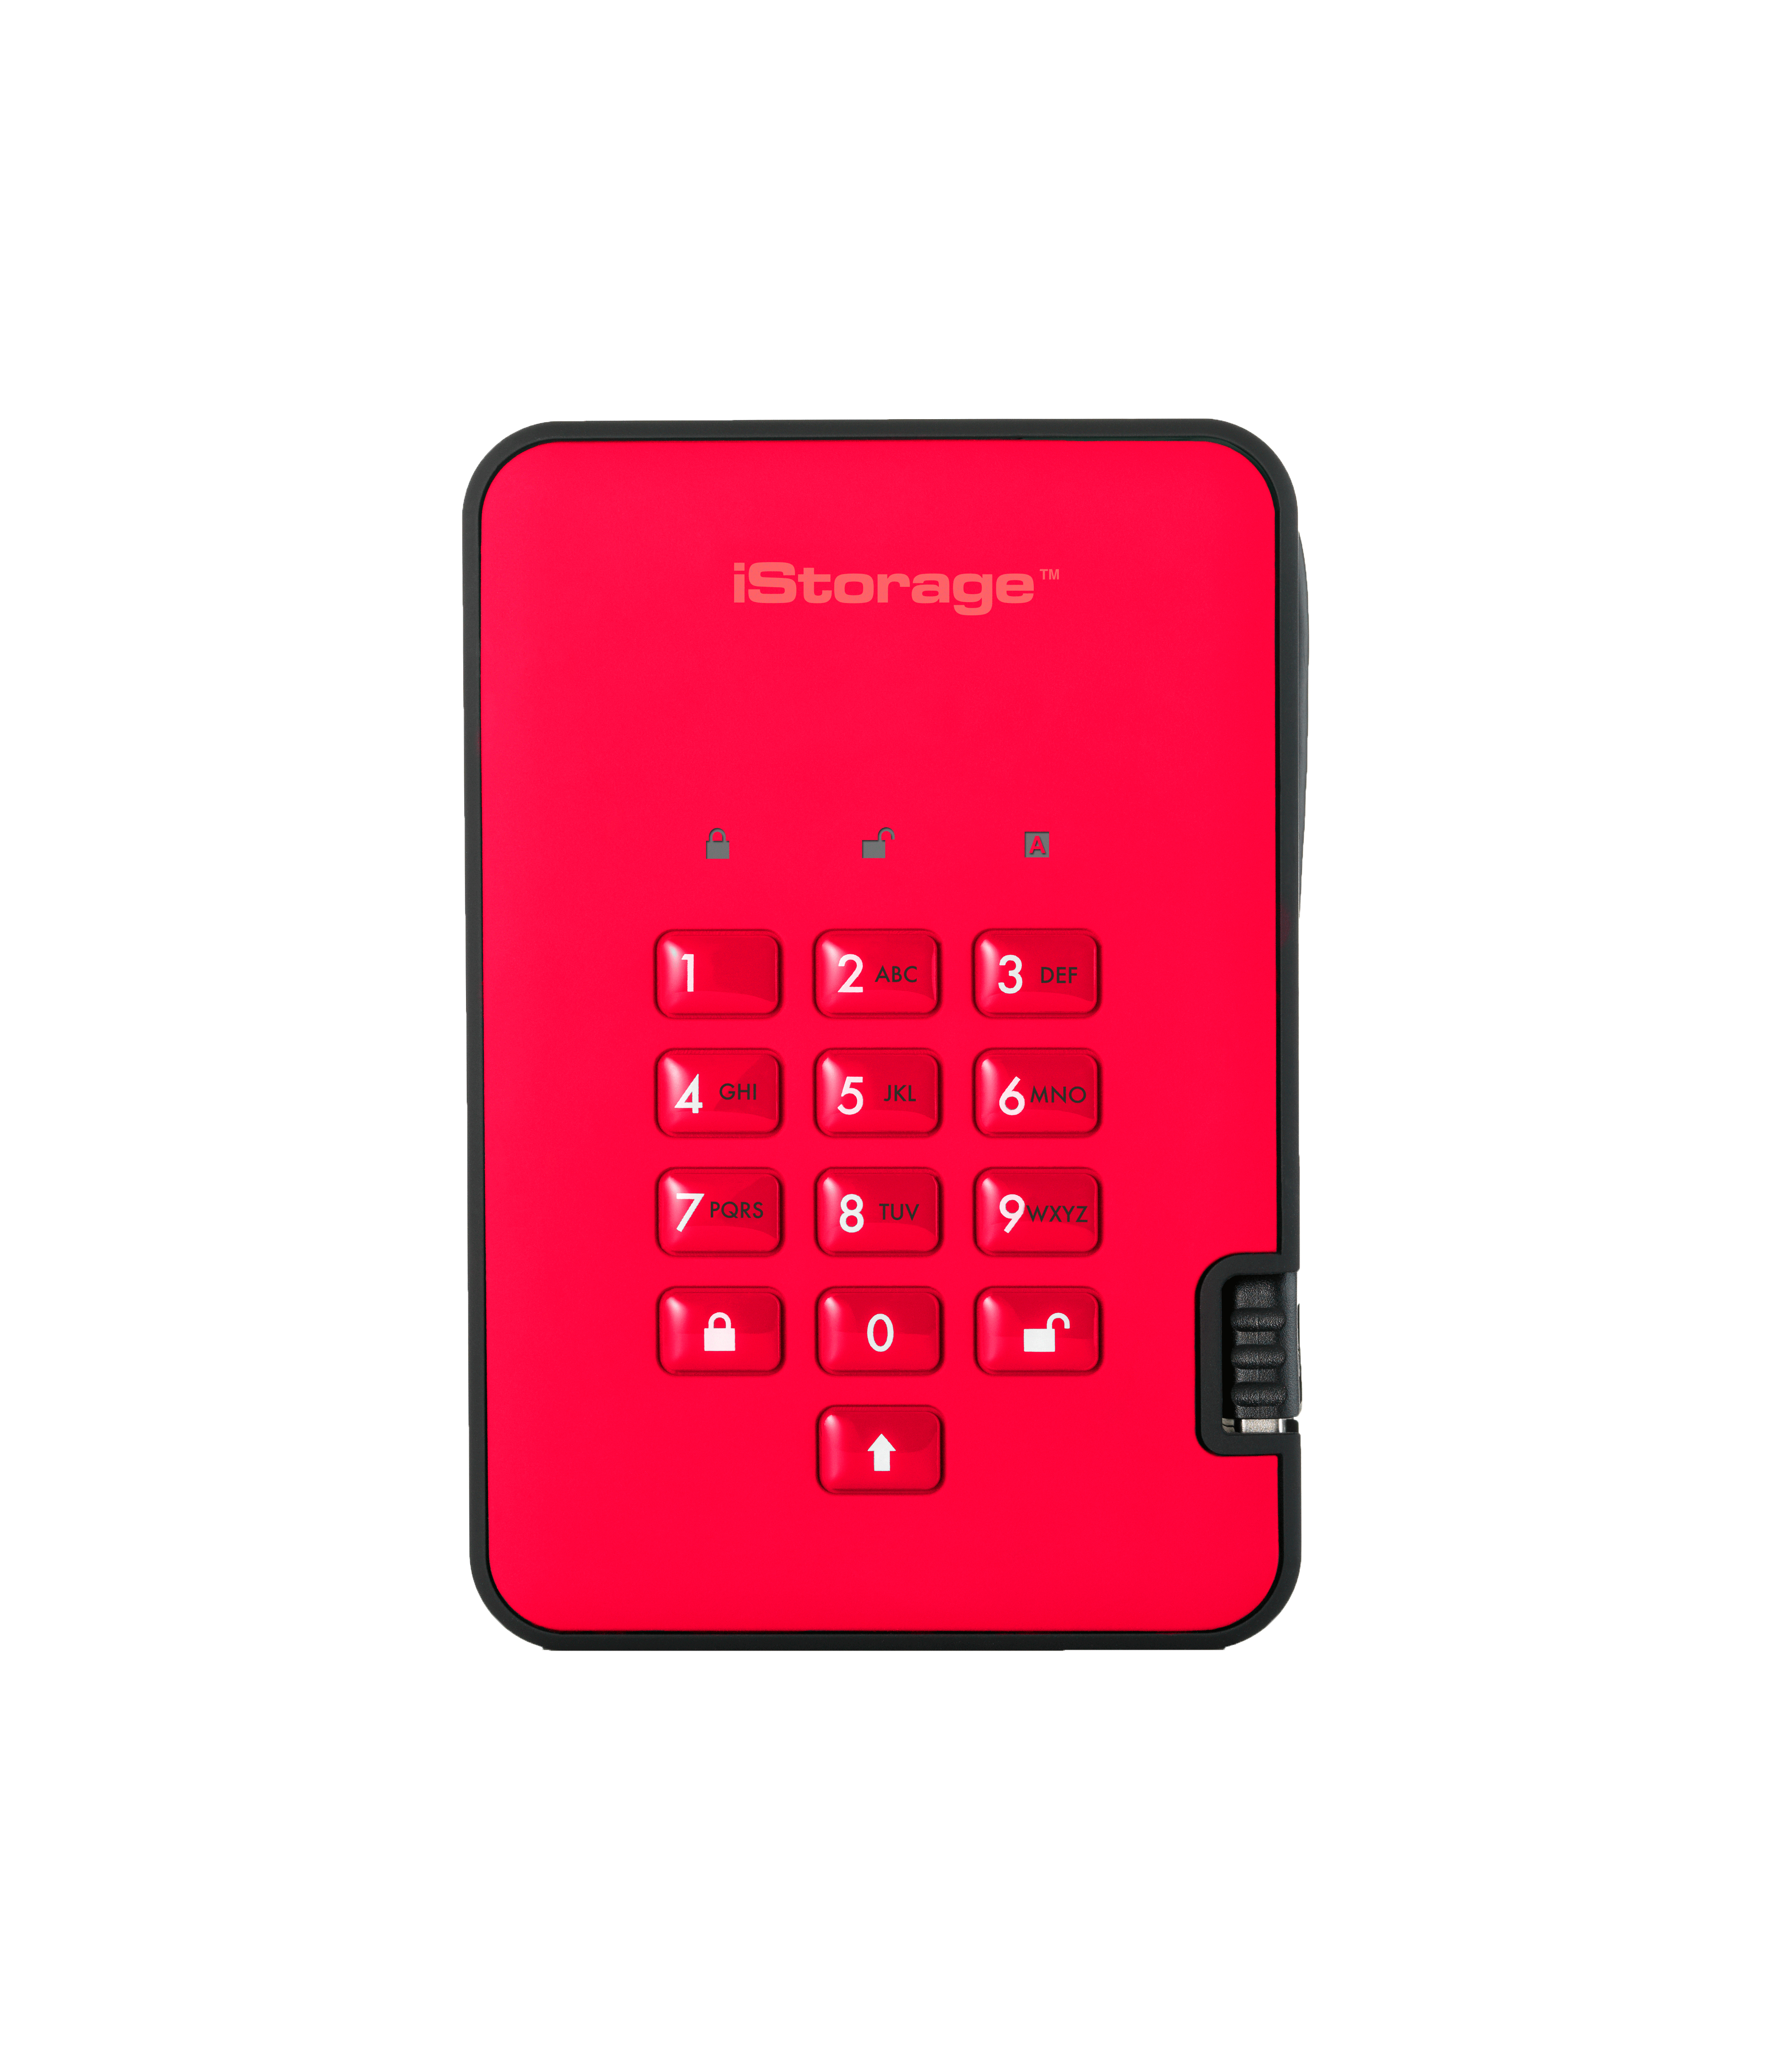 IS-DA2-256-1000-R iStorage diskAshur 2 USB Type-A 3.1 (3.1 Gen 2) 1000GB Red external hard drive - Ent01